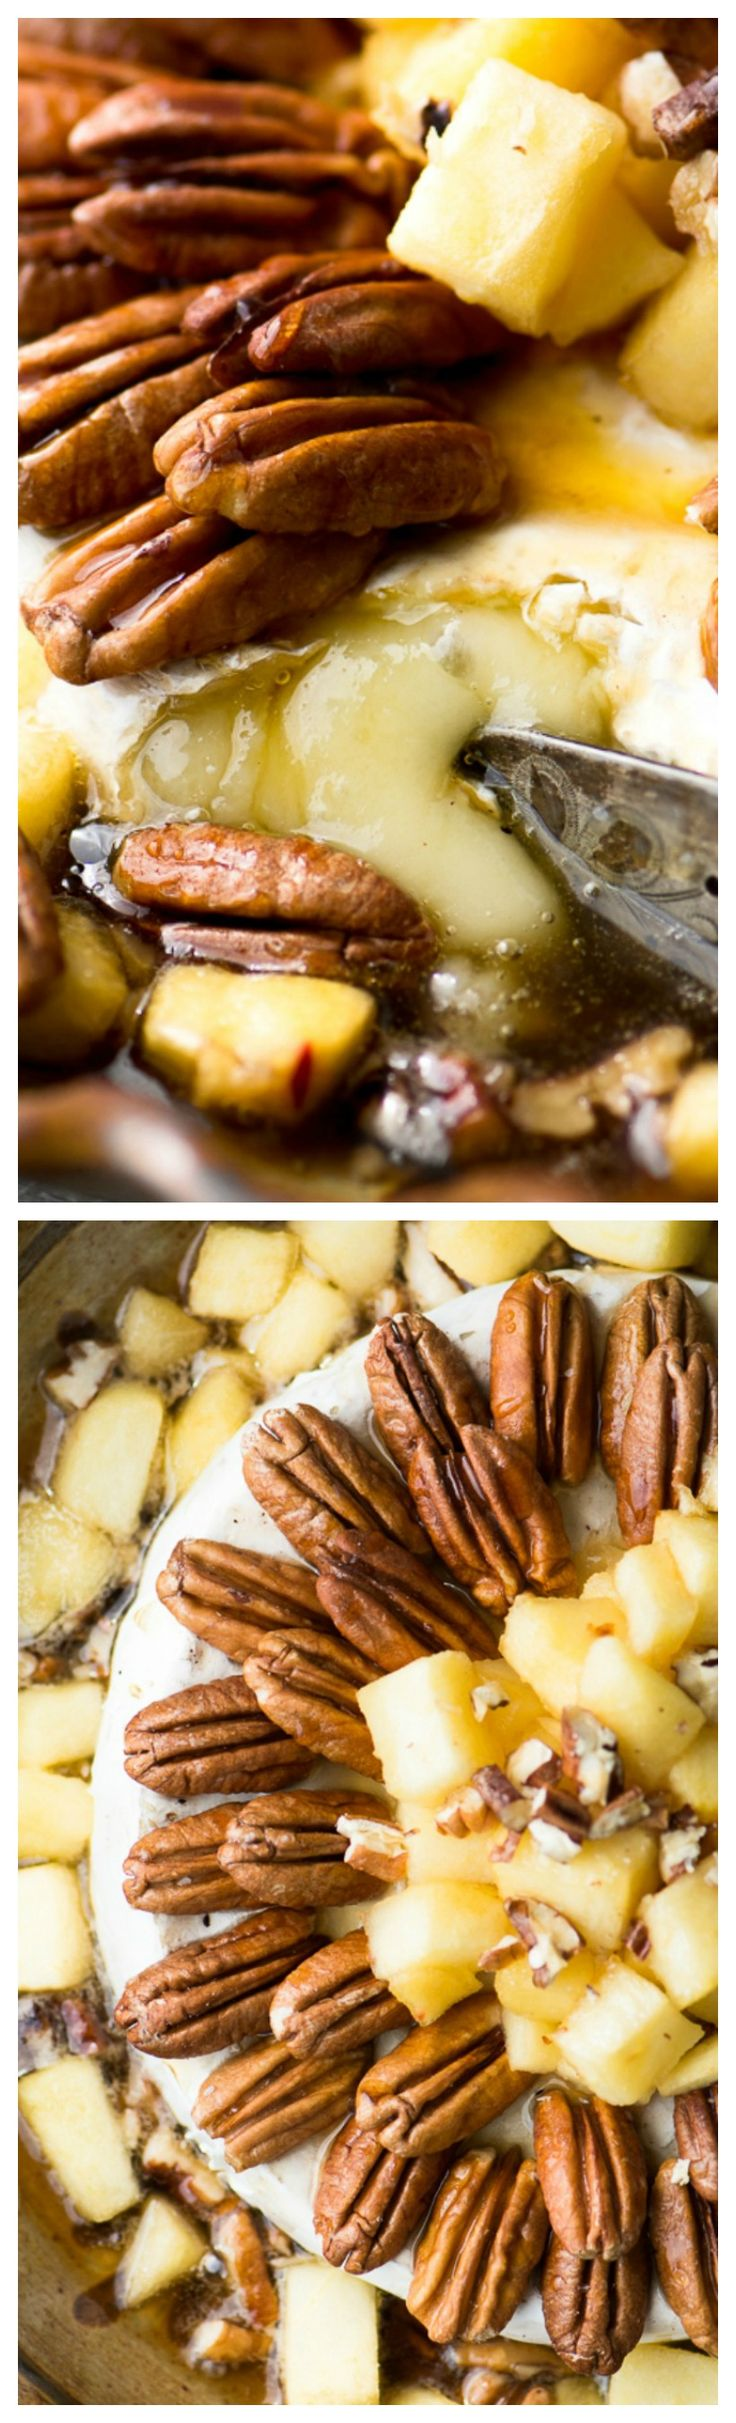 Baked Brie with Apples, Pecans, & Maple Syrup ~ Quick and easy... Gooey molten cheese and maple syrup, caramelized apples and crunchy roasted pecans.